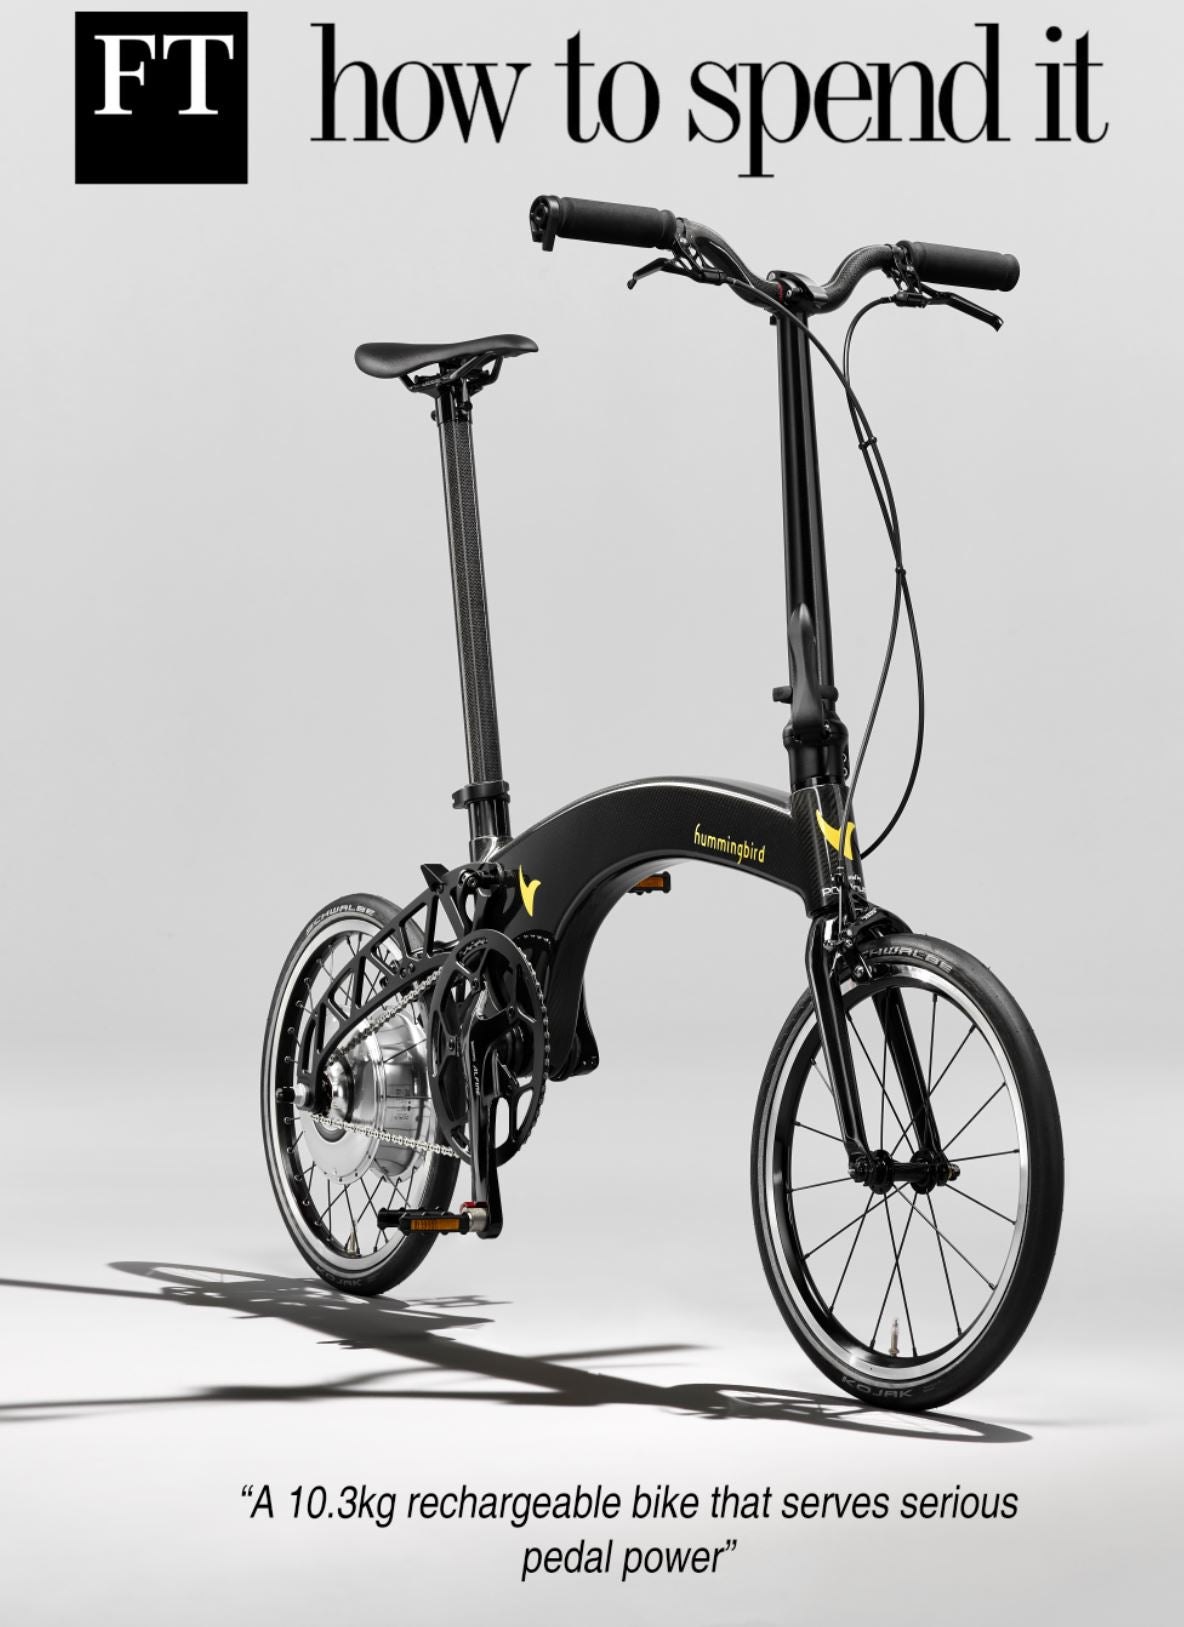 Hummingbird bike featured in FT how to spend it